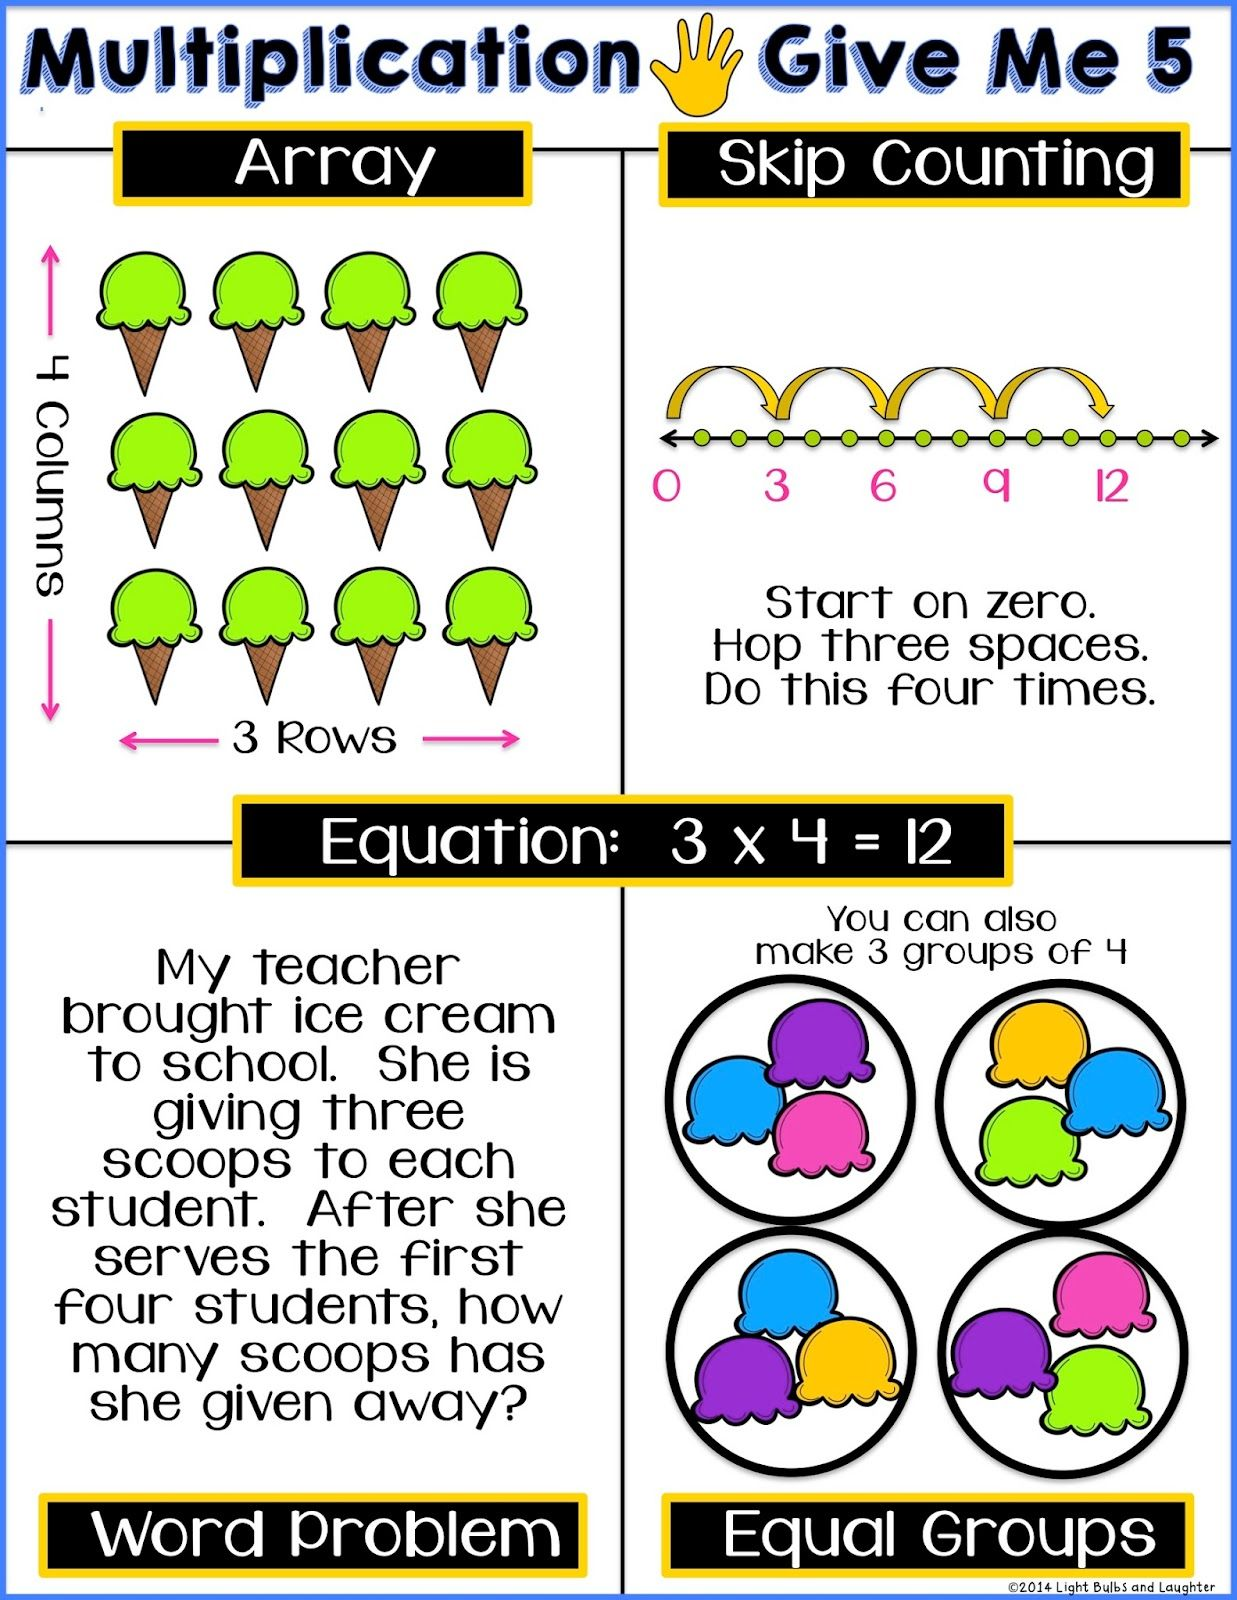 Multiplication Give Me 5 Poster and Worksheet - FREE! Students show ...